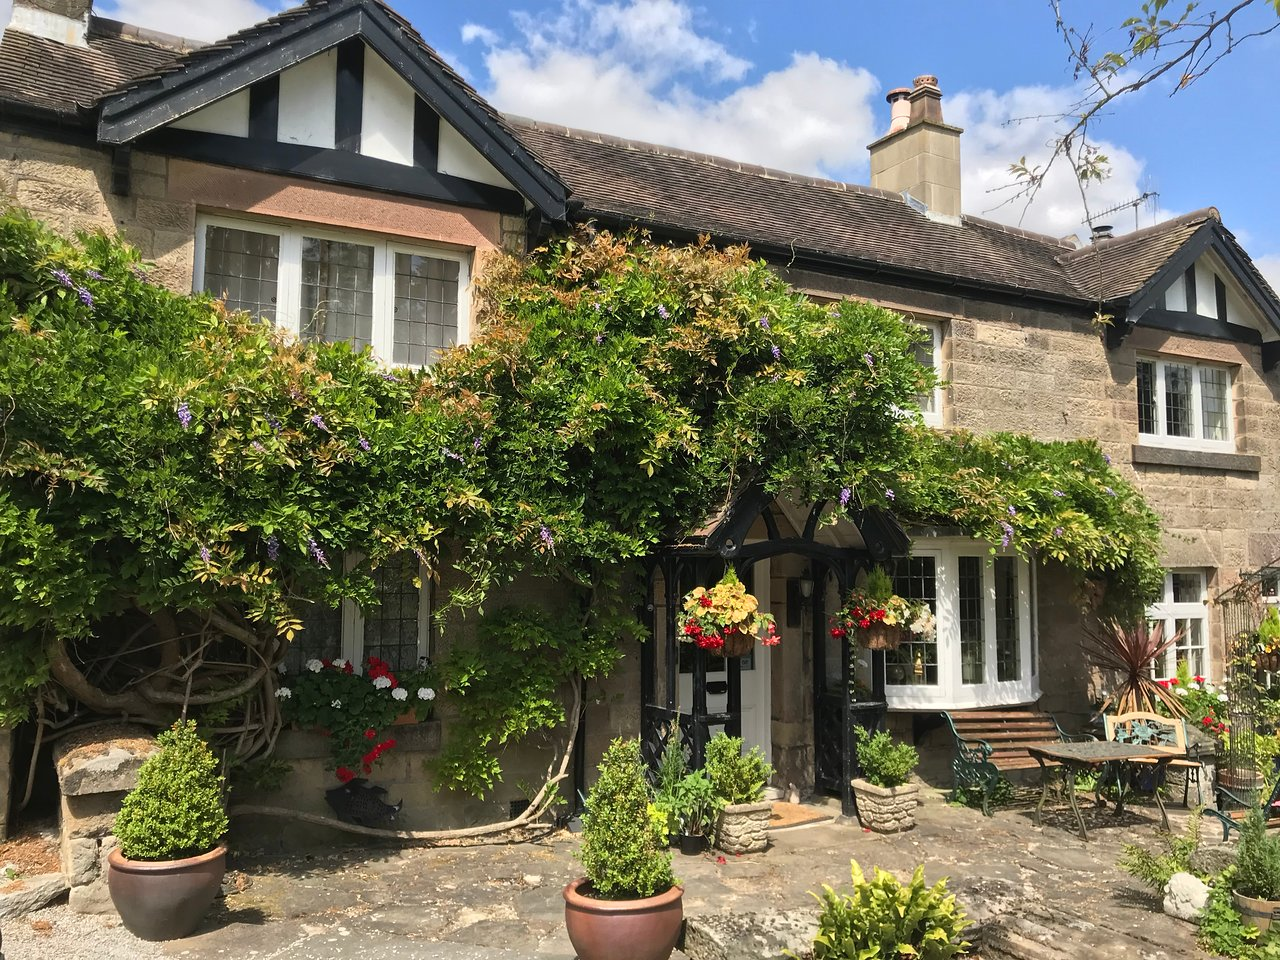 Bed And Breakfast Matlock The Pines Bed Breakfast B B Reviews Matlock England